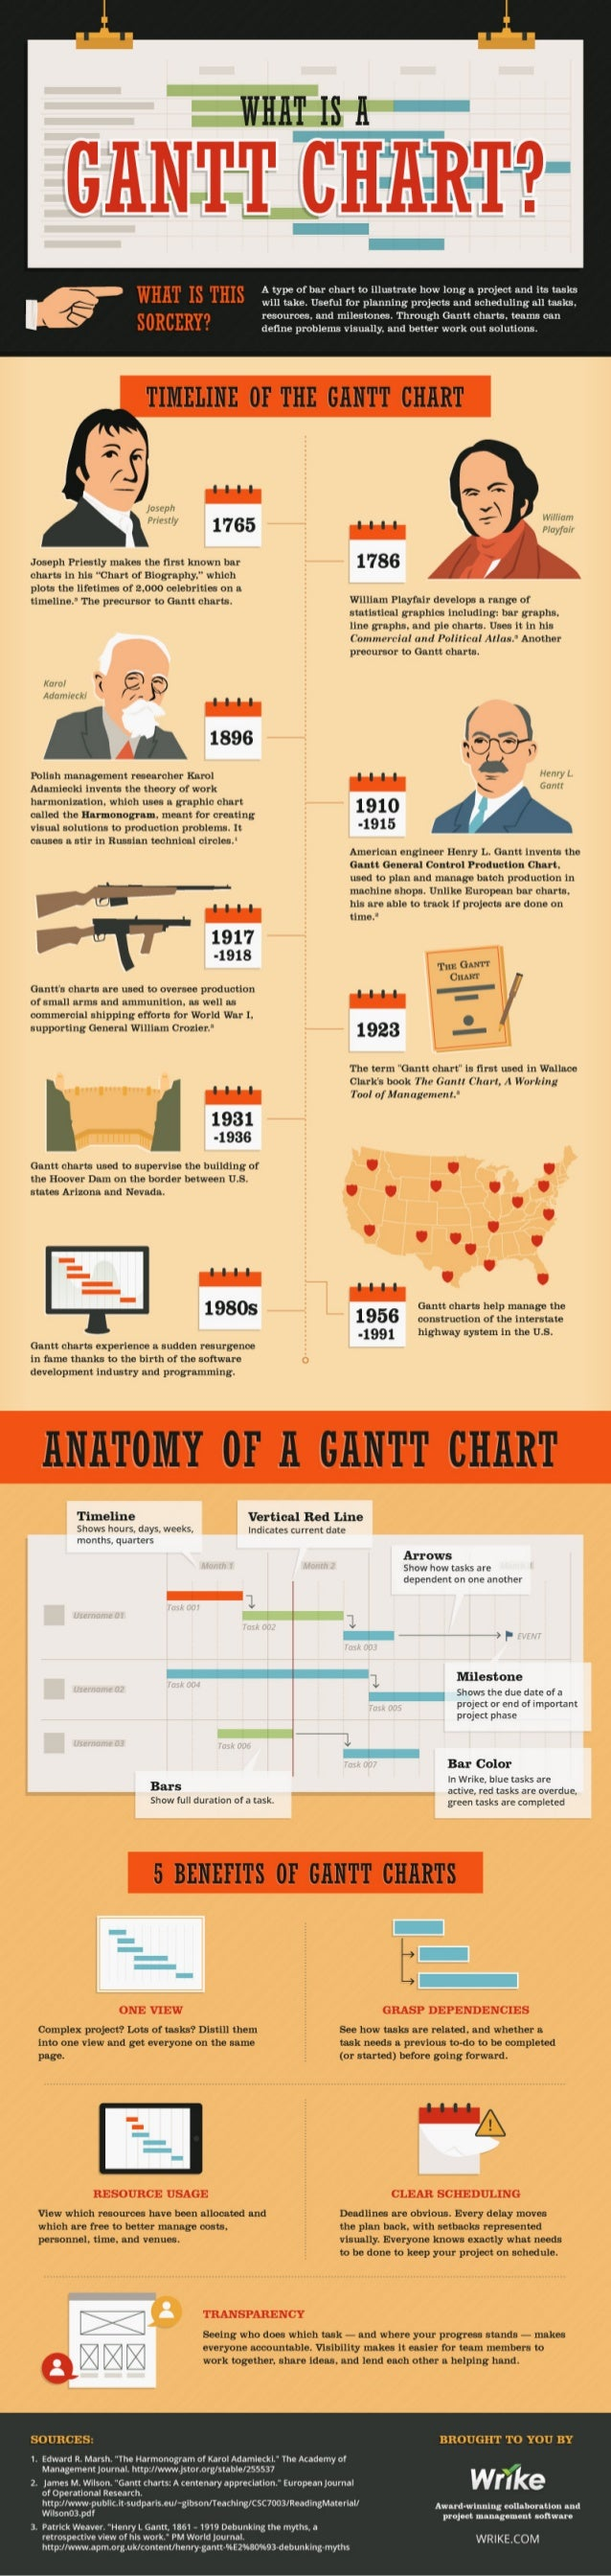 What is a Gantt Chart in Project Management? (Infographic)